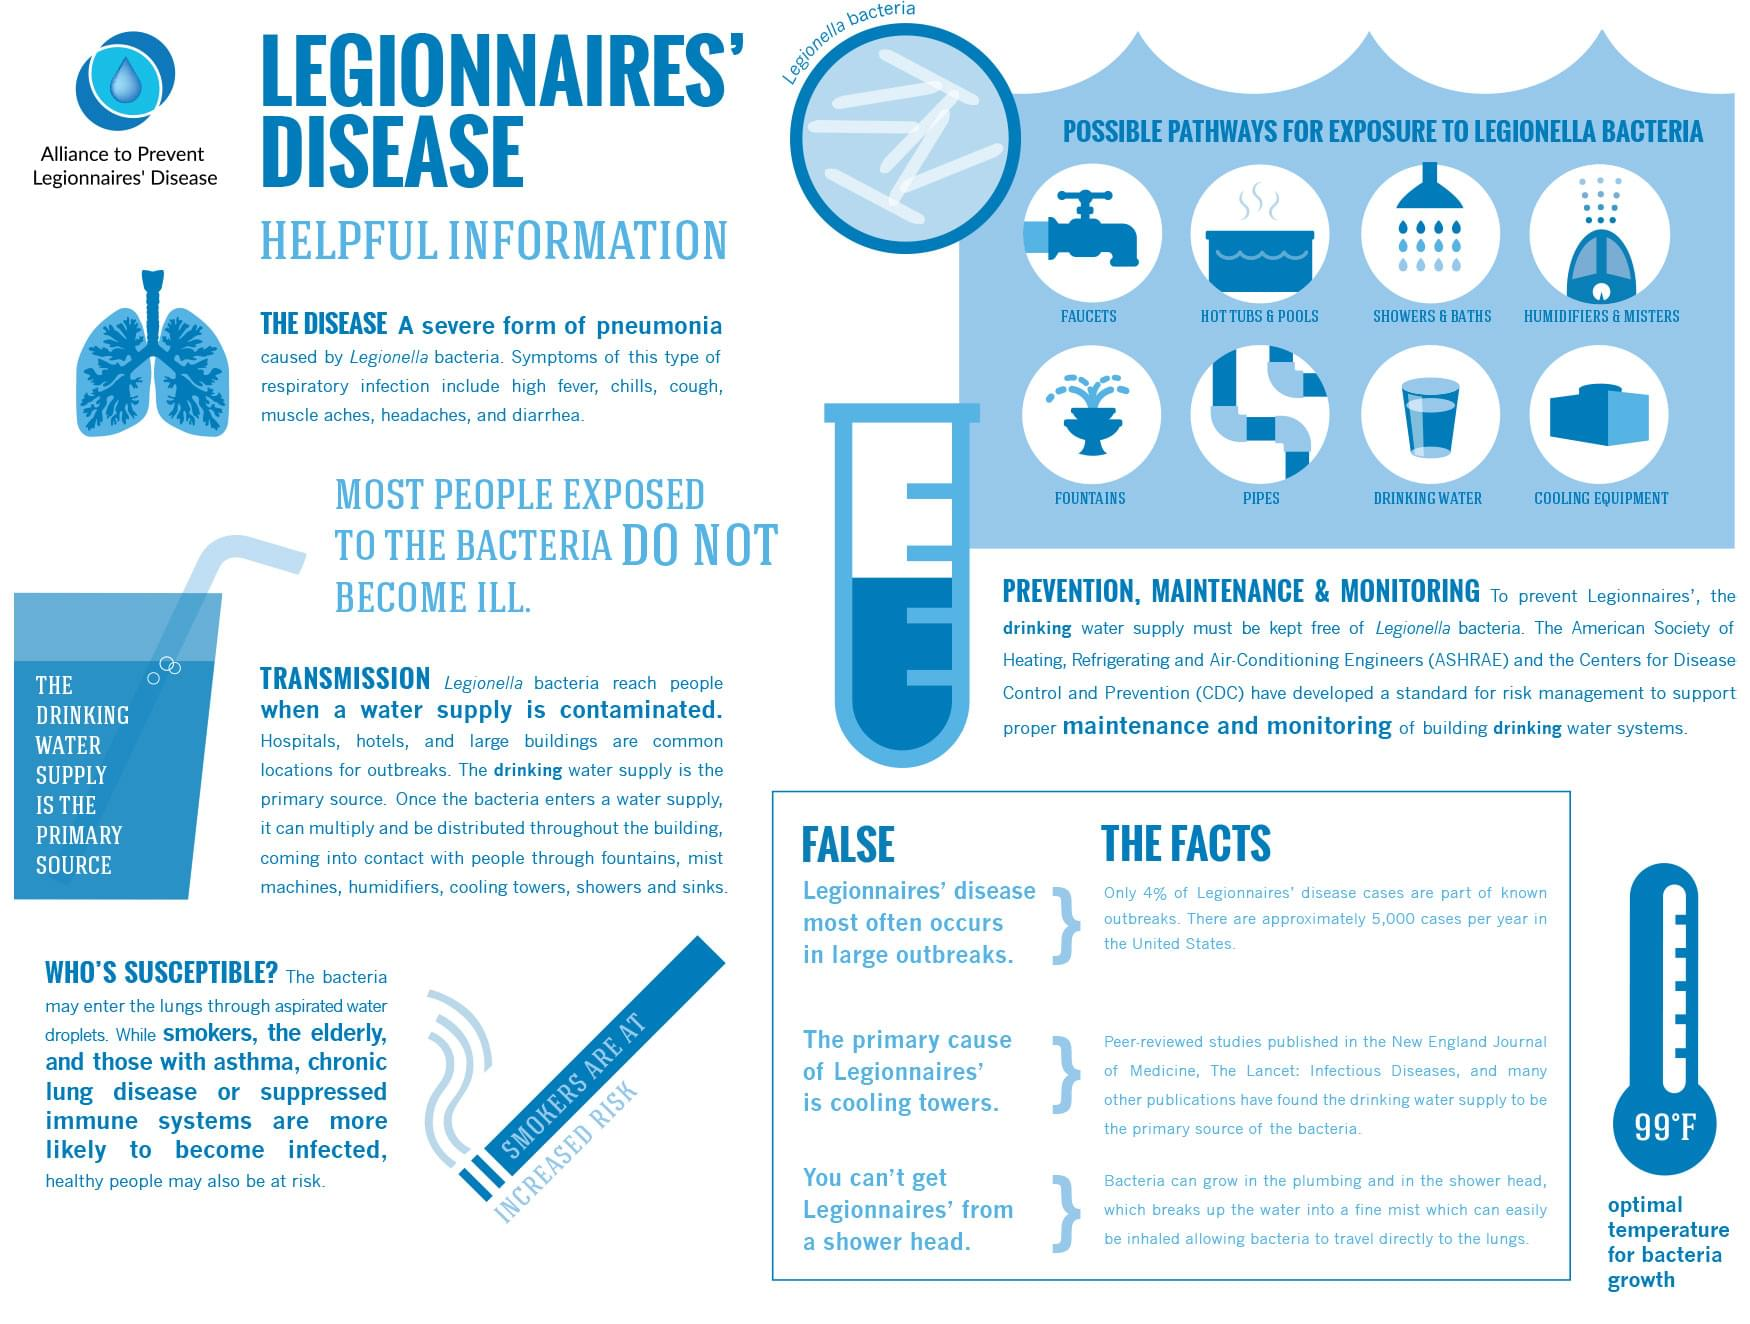 Water pipes which have been at rest could lead to Legionnaires' Disease